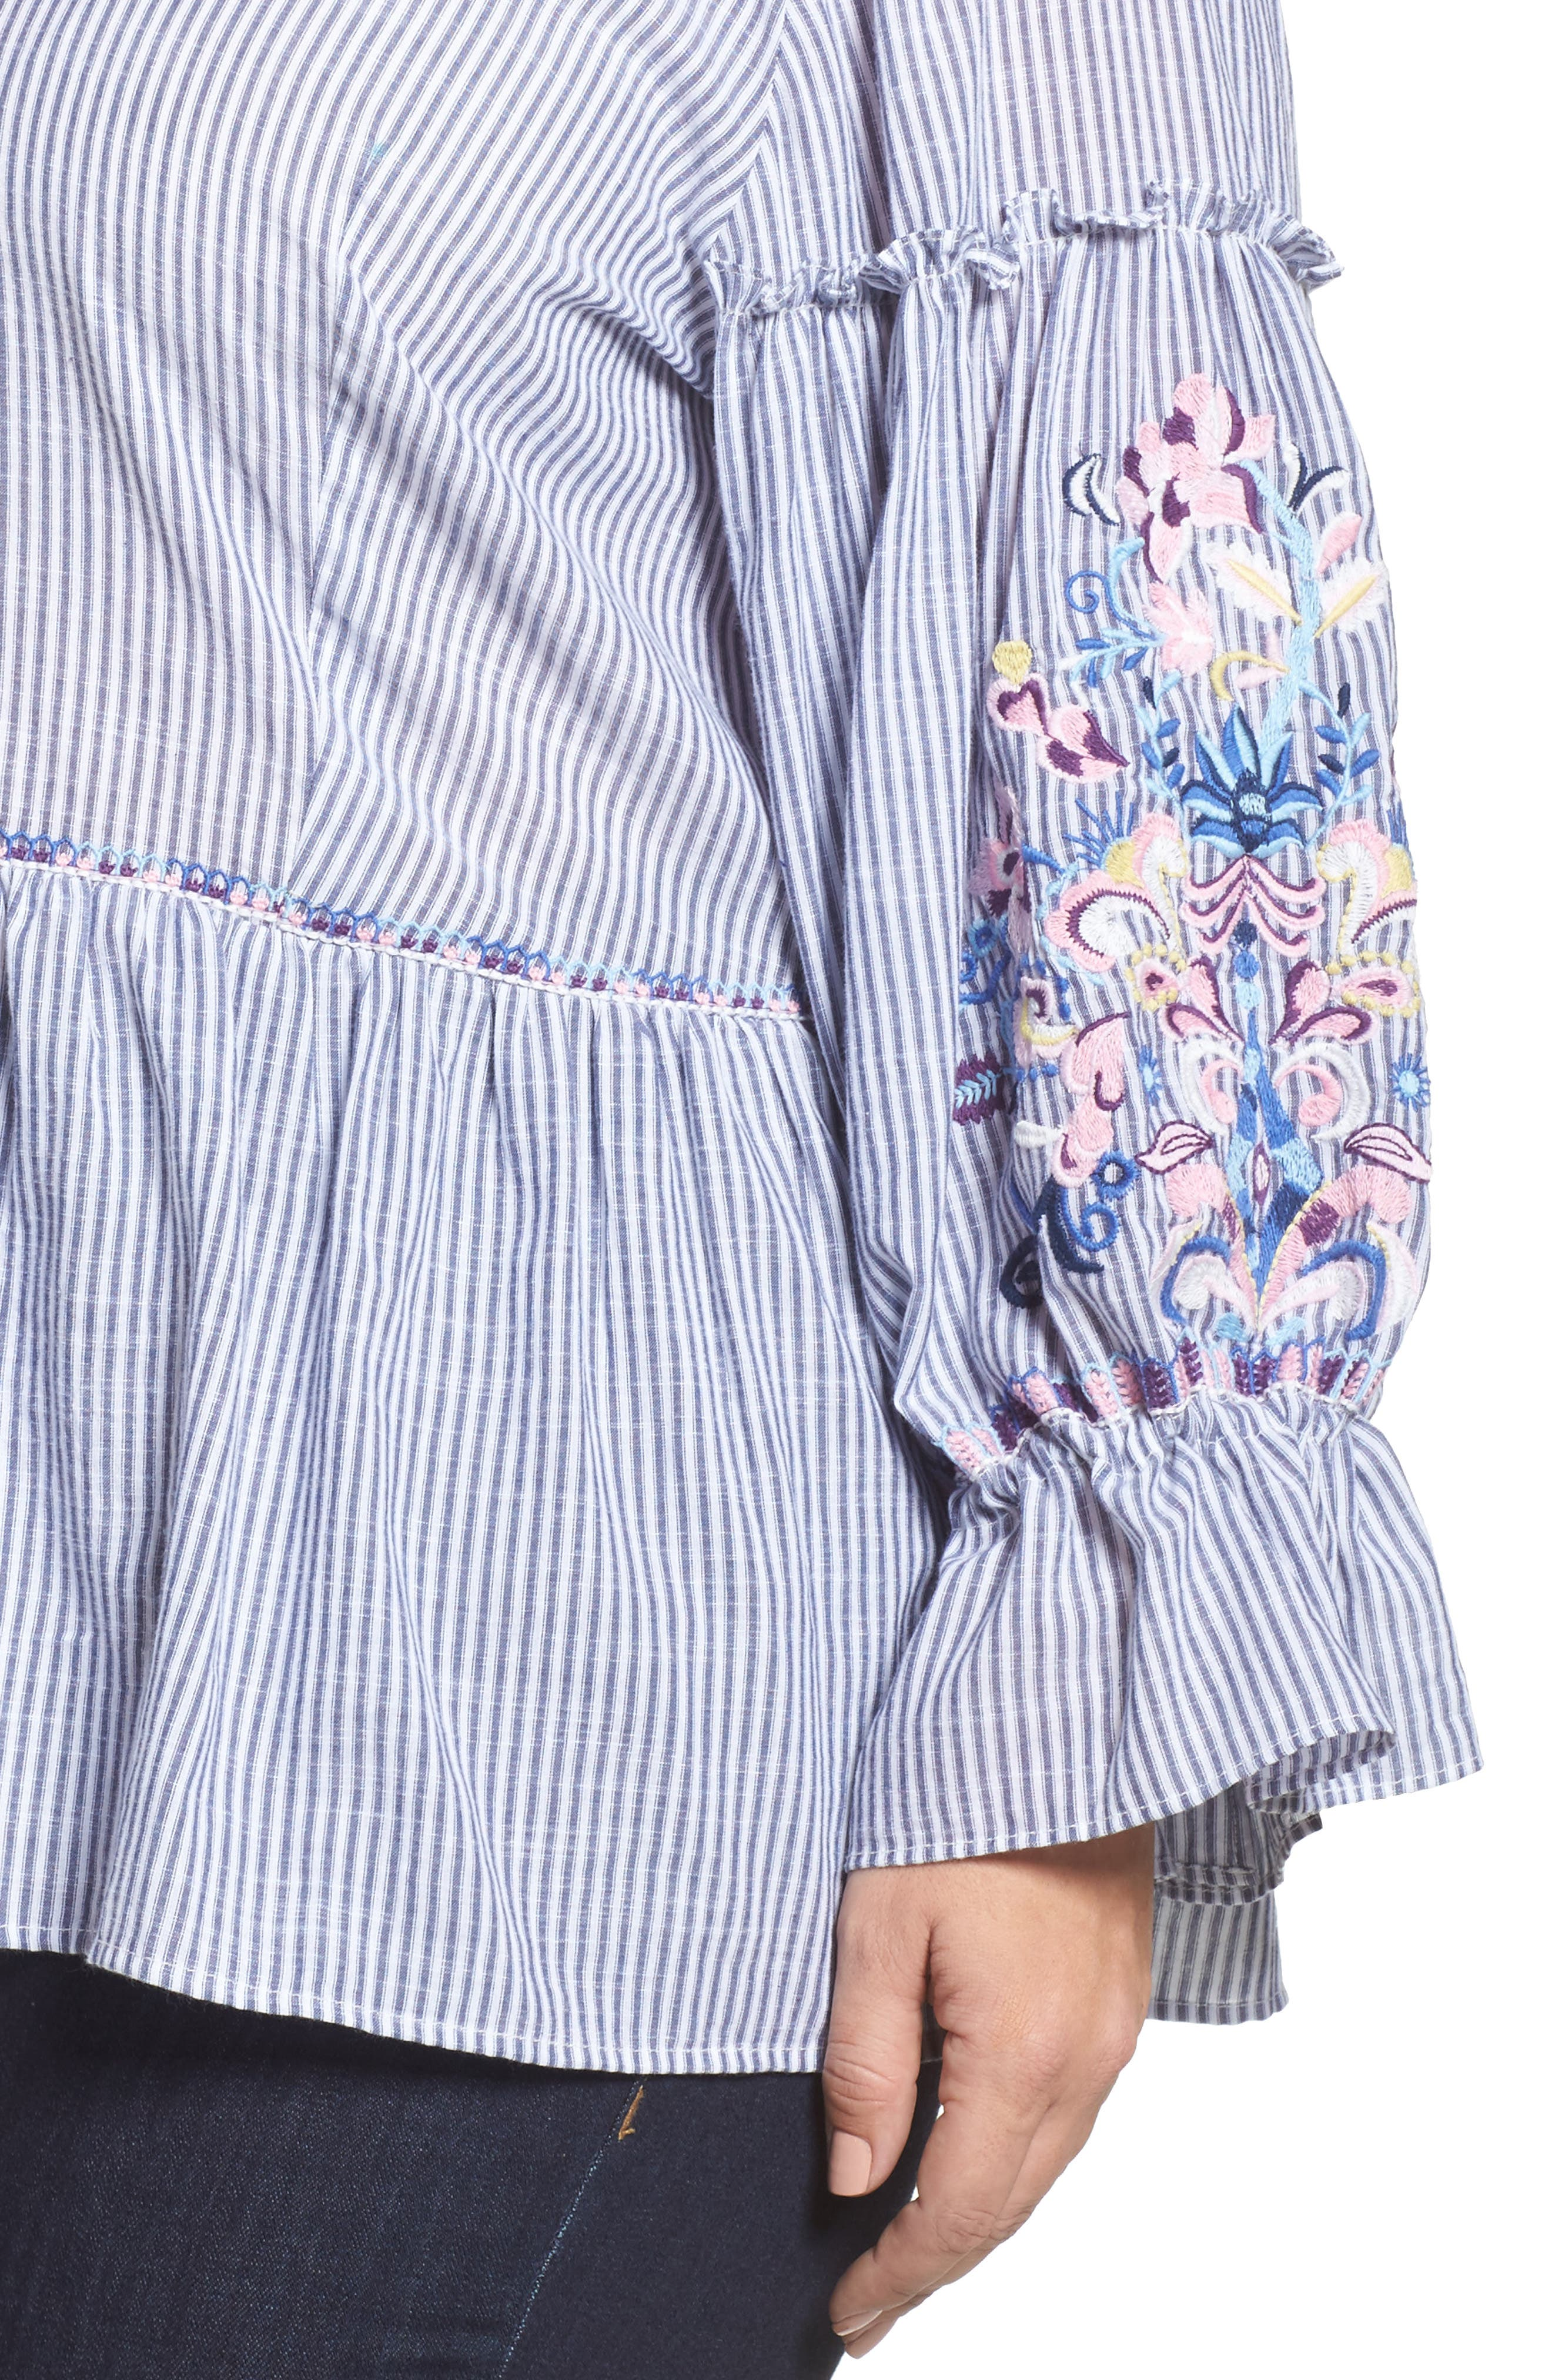 Embroidered Blouse,                             Alternate thumbnail 4, color,                             420